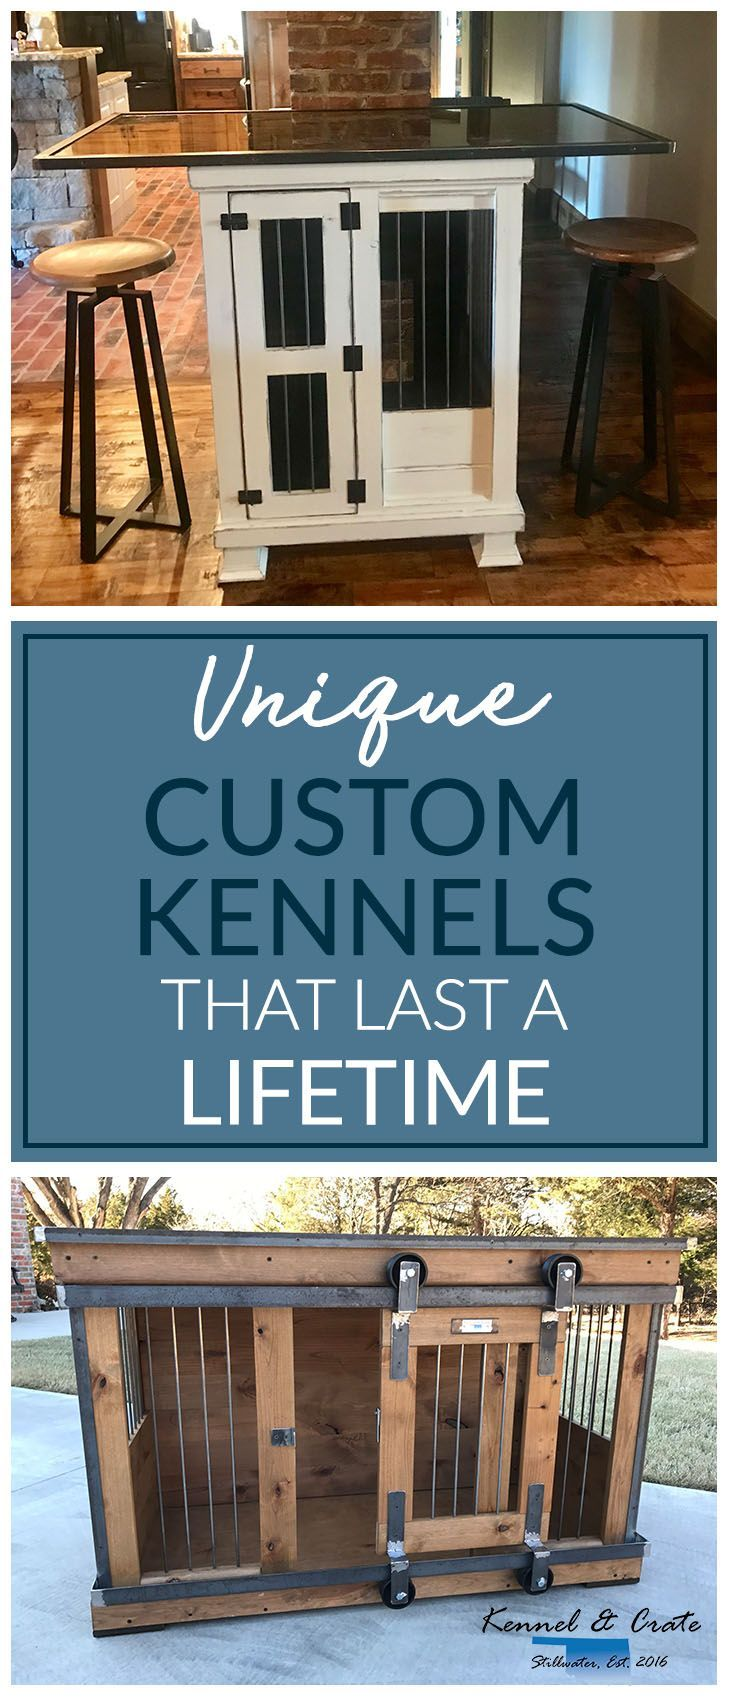 Designer indoor single dog kennels! Replace your wire dog crate with a beautiful piece of functional furniture! Great conversation piece that can be used as an entertainment center, console table, entry table, credenza, buffet, kitchen island or laundry room folding table! #Kennelandcrate  #Customorders #Stylishdogkennel #dogkennel